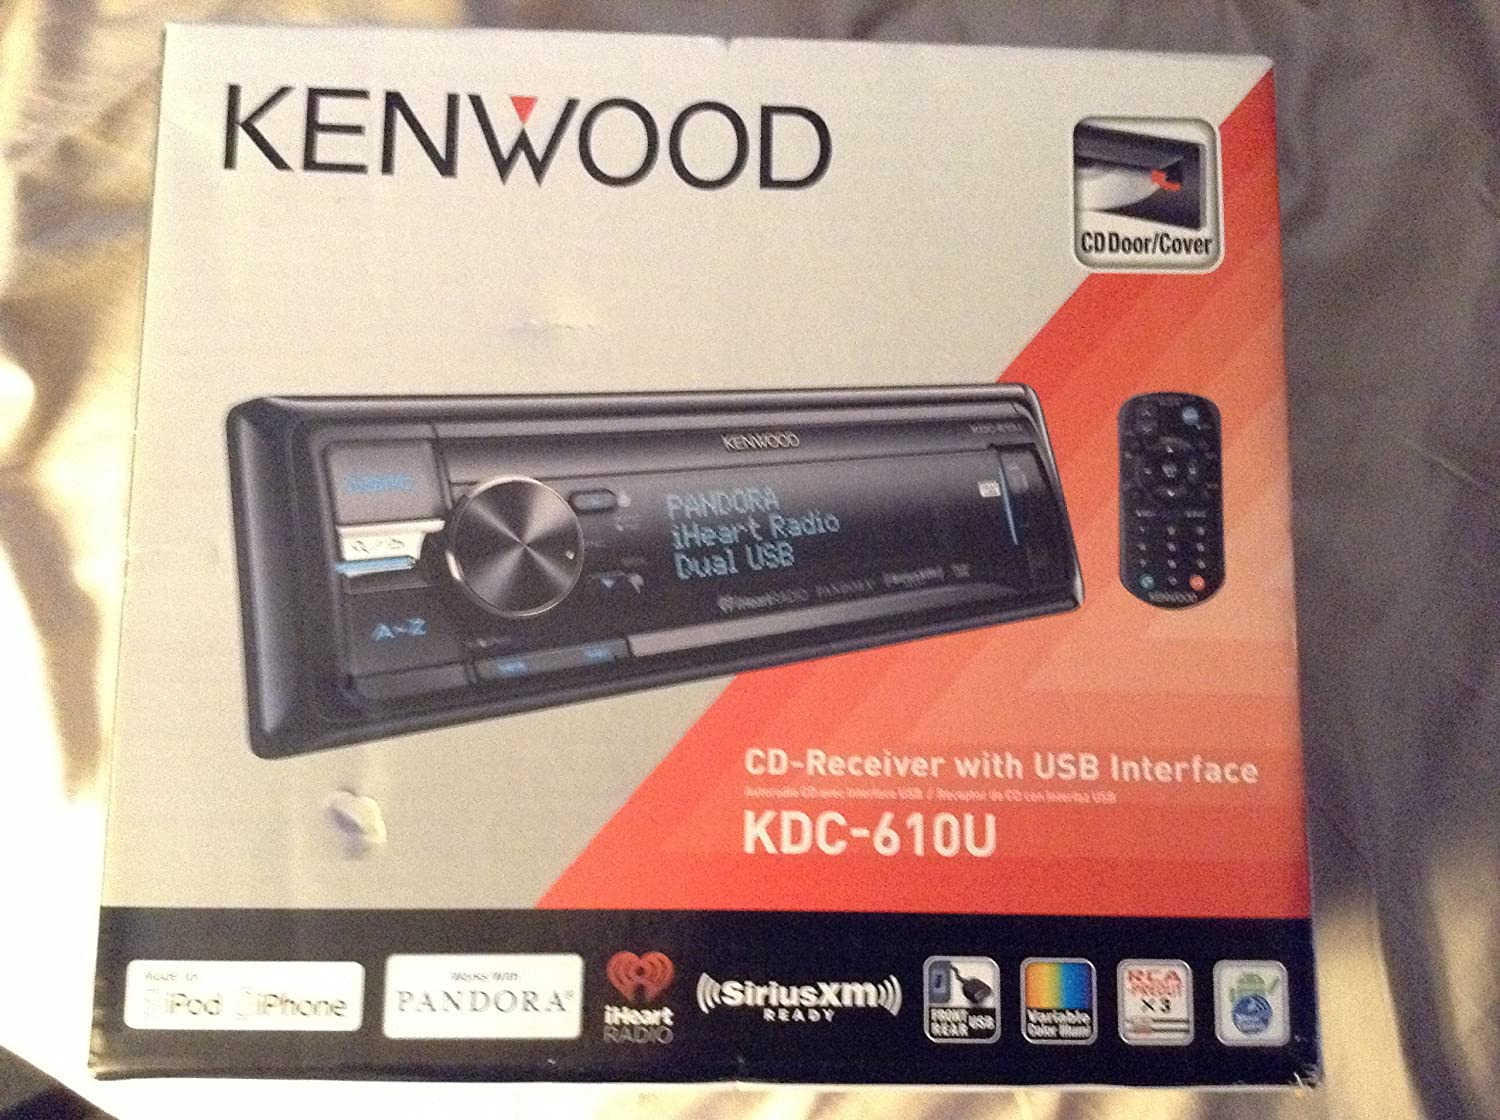 91ms9JUyklL._SL1500_ amazon com kenwood kdc 610u cd player with dual usb multi color kenwood kdc 610u wiring diagram at bakdesigns.co